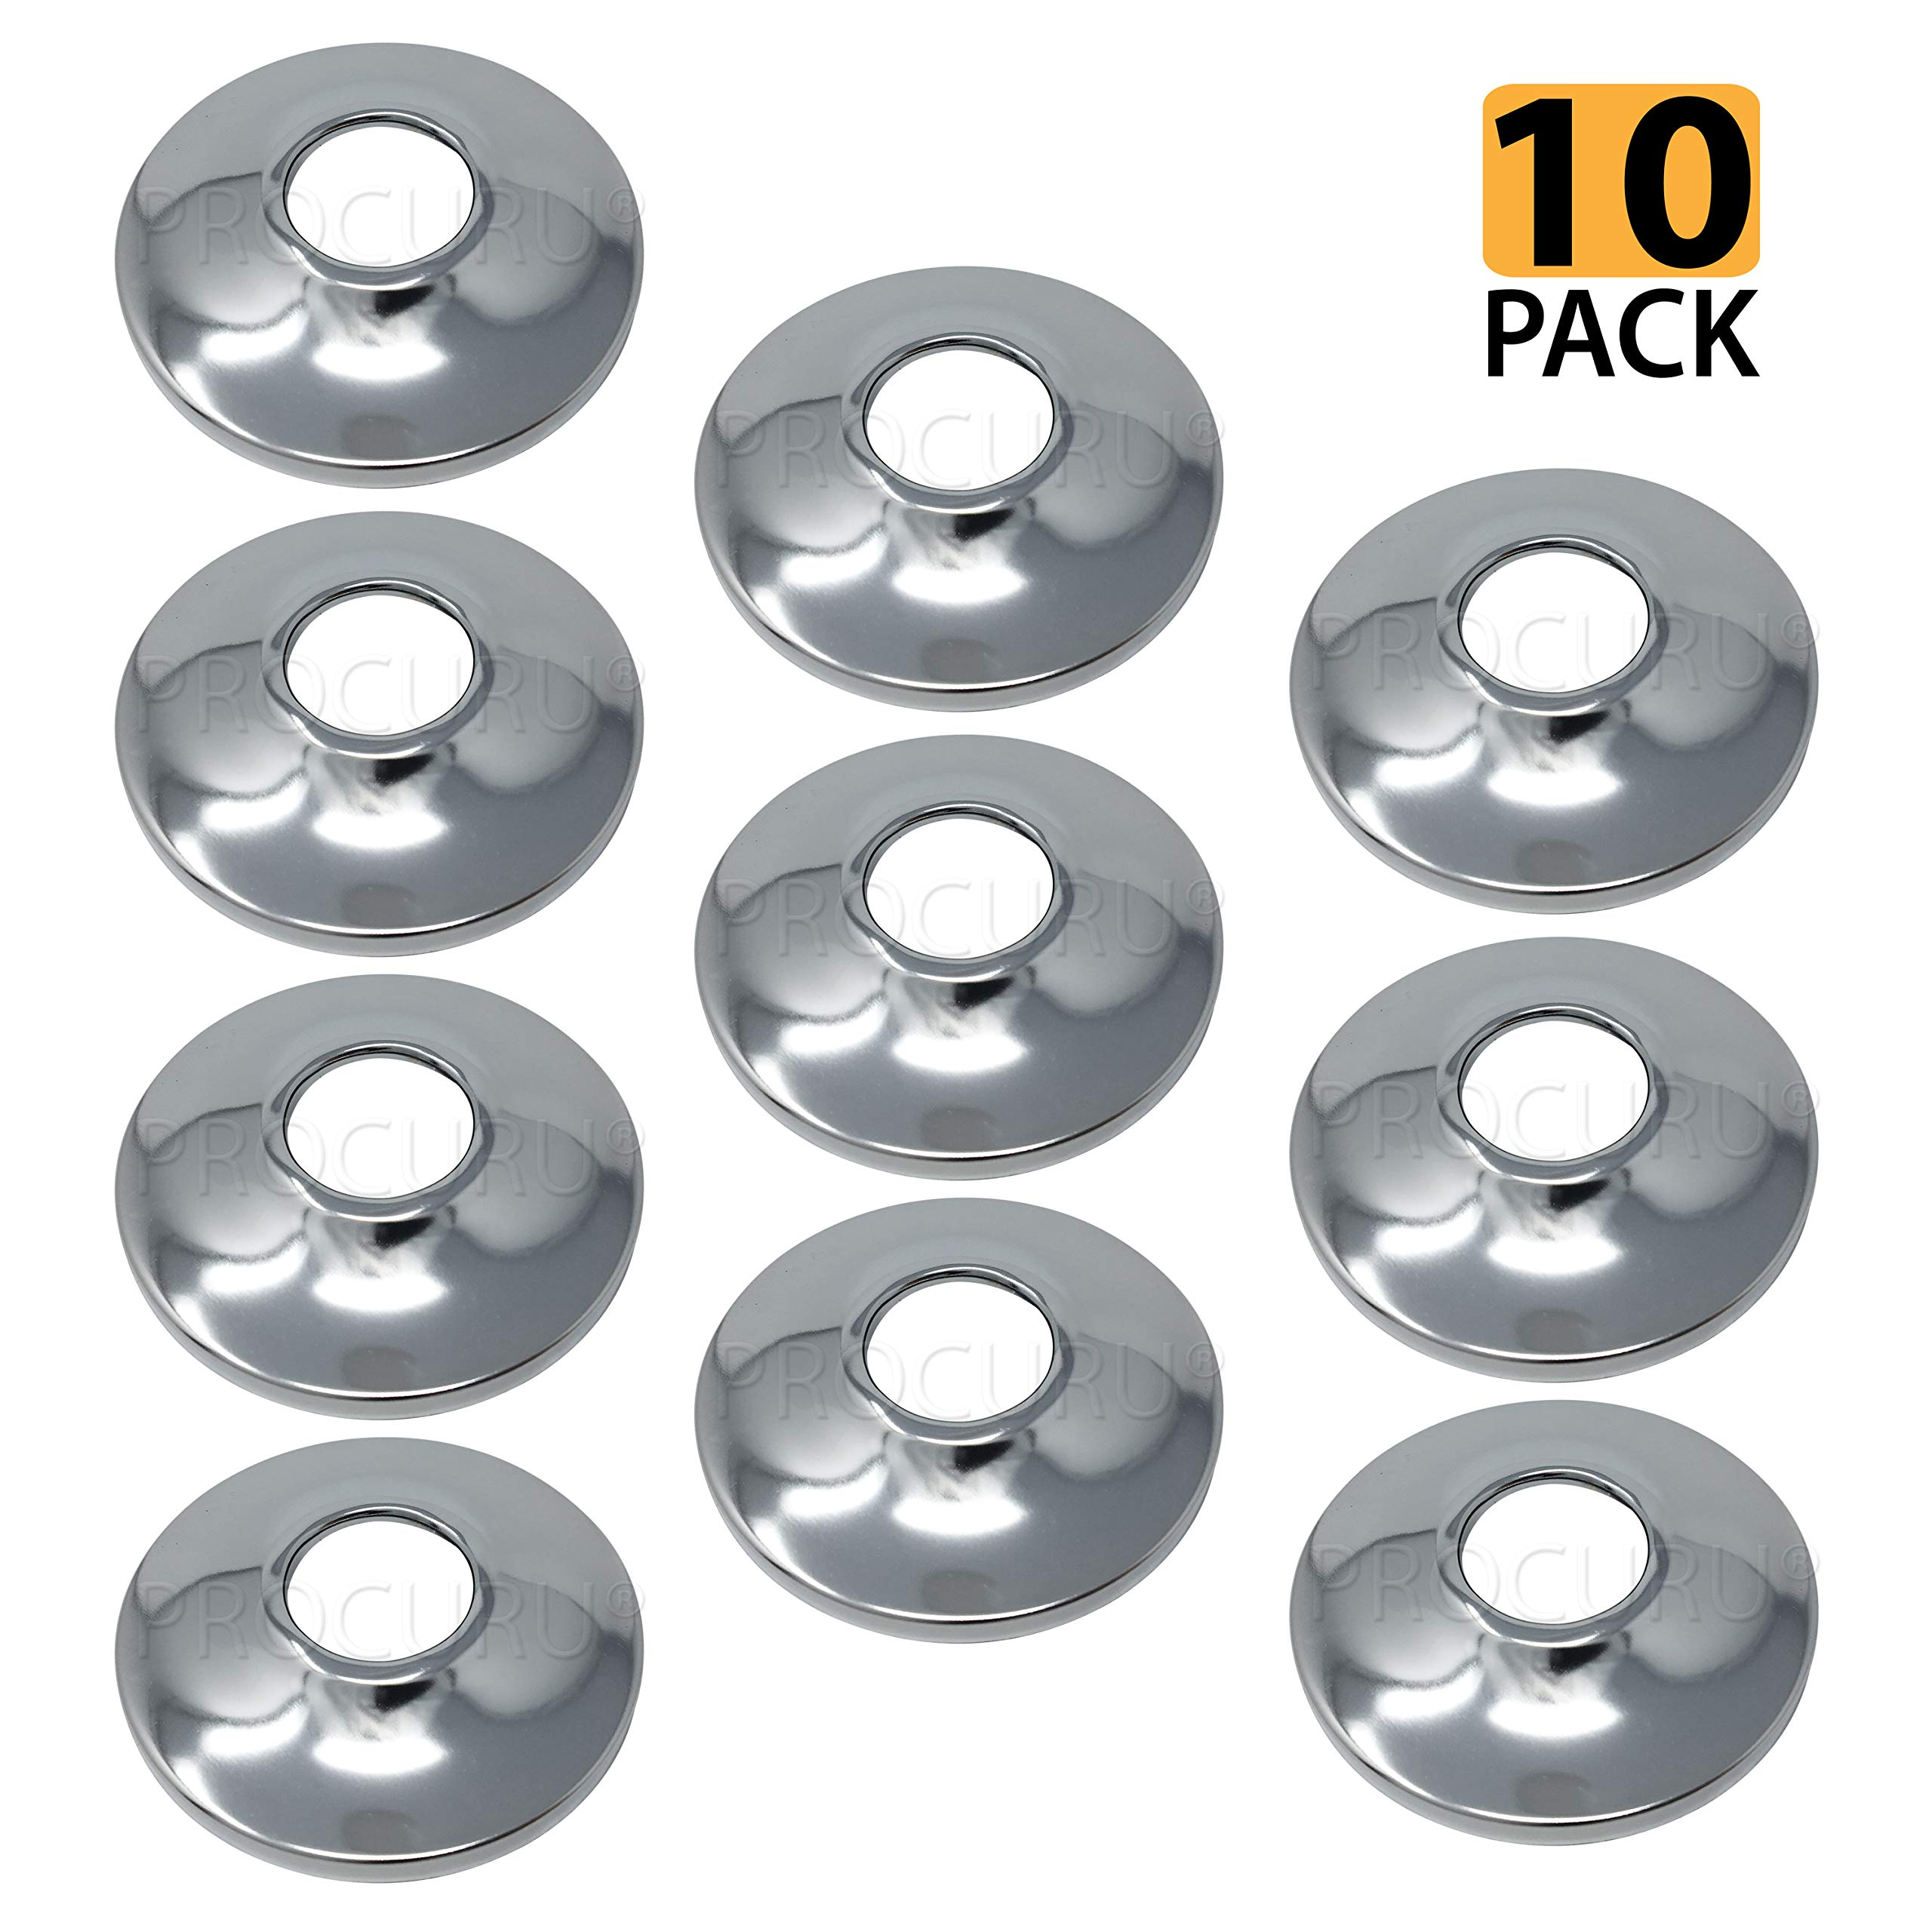 [10-Pack] PROCURU 1/2-Inch CTS Escutcheon Flange Plate Pipe Cover, Chrome-Plated Steel with SureGrip, for 1/2'' Copper Pipe by PROCURU (Image #1)